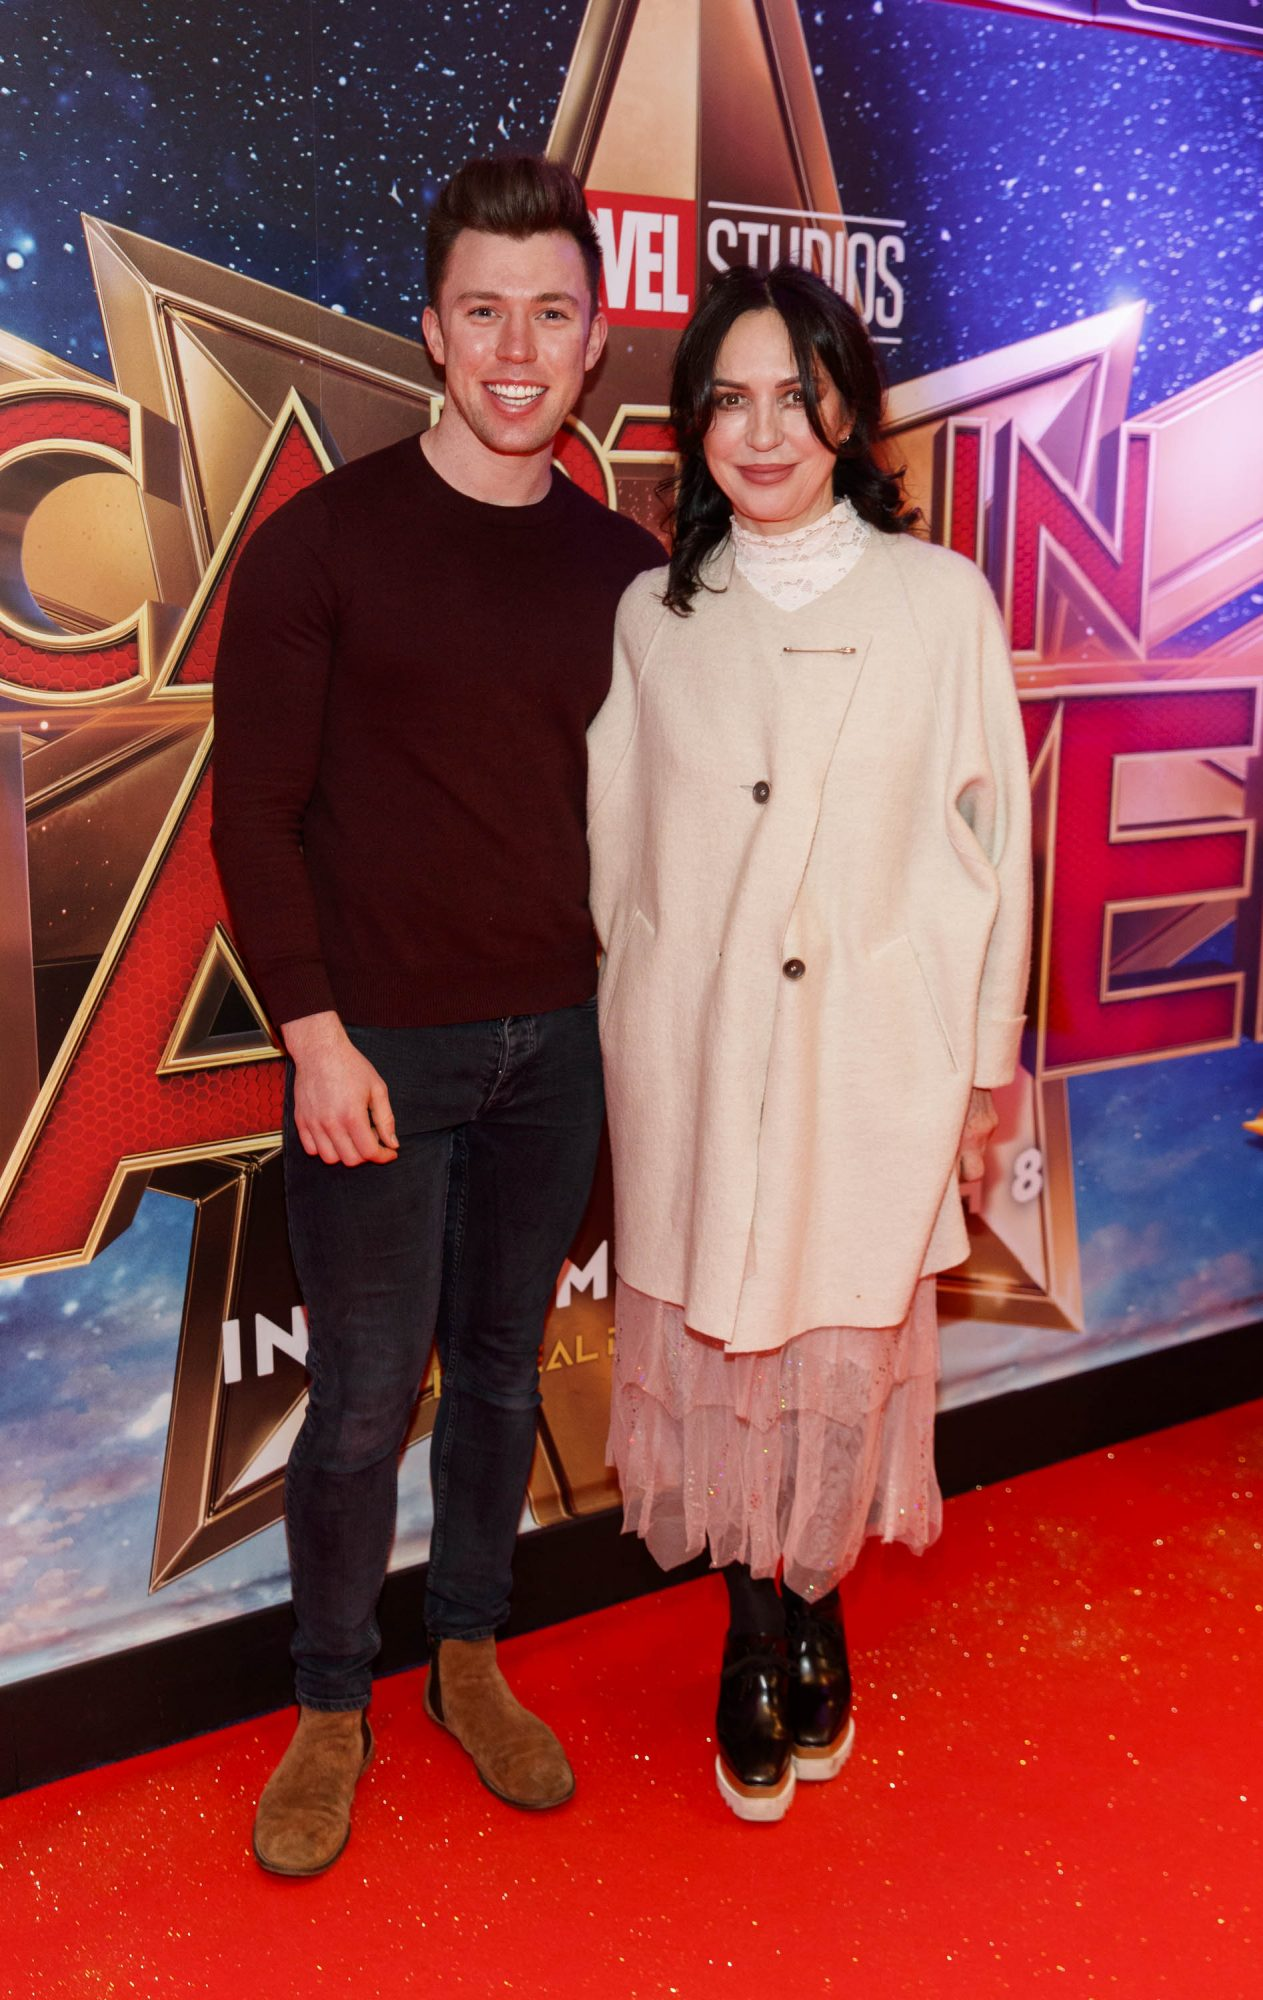 Elliot Ryan and Morah Ryan pictured at a special preview screening of CAPTAIN MARVEL in Cineworld Dublin. Picture by: Andres Poveda